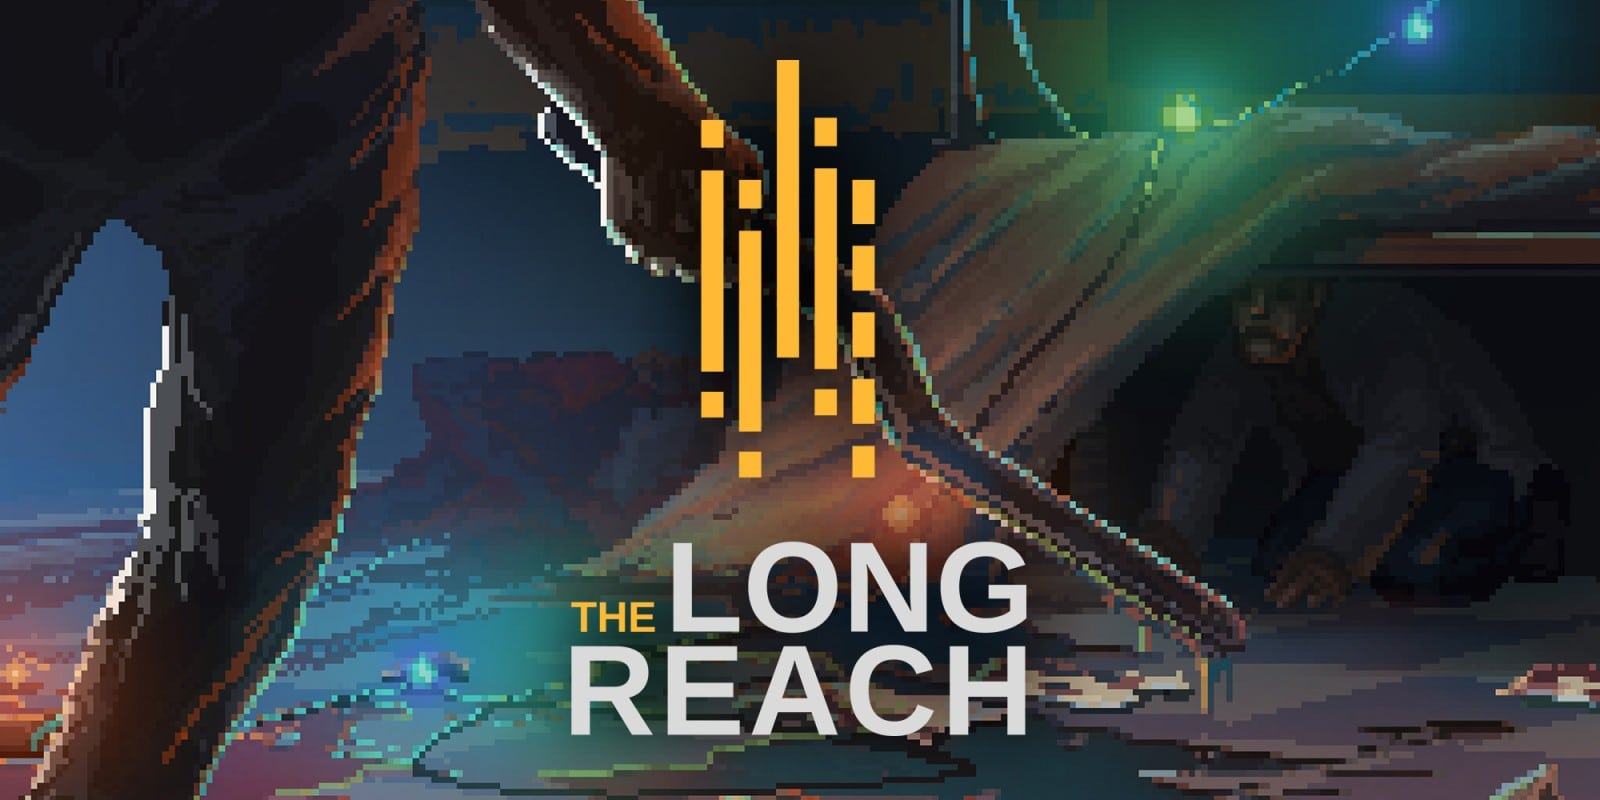 La aventura de terror The Long Reach llega a Xbox One